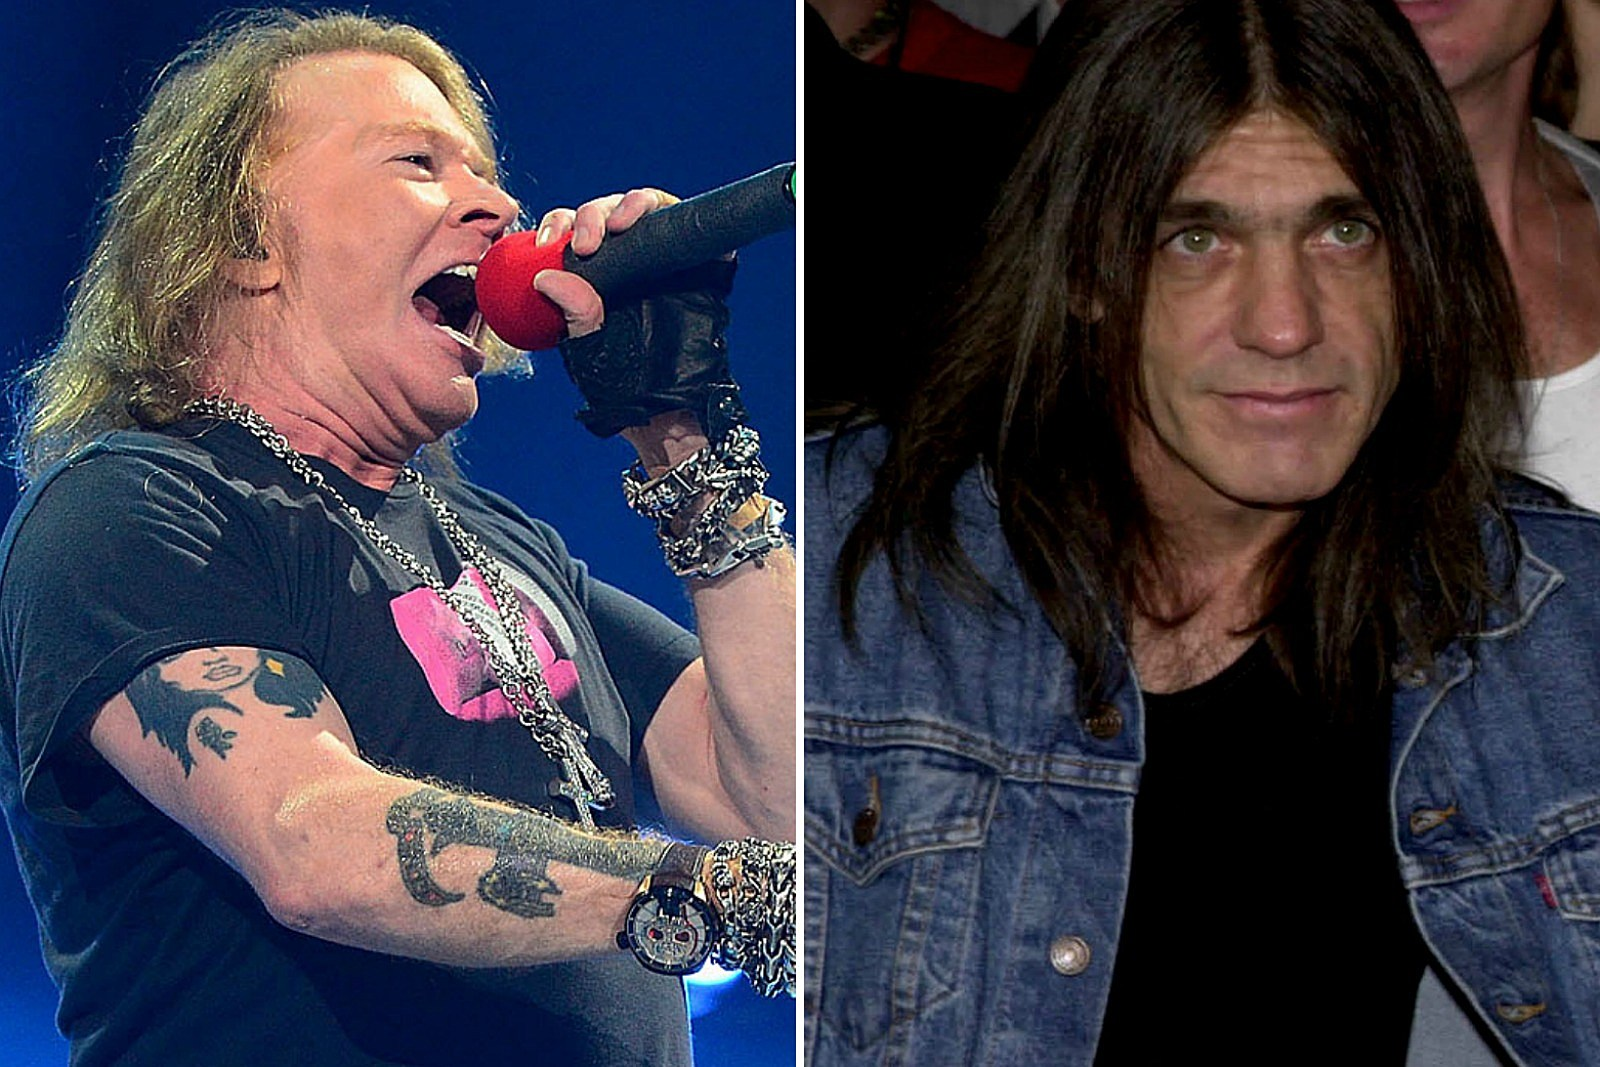 Watch Guns N' Roses' Live Tribute to AC/DC's Malcolm Young